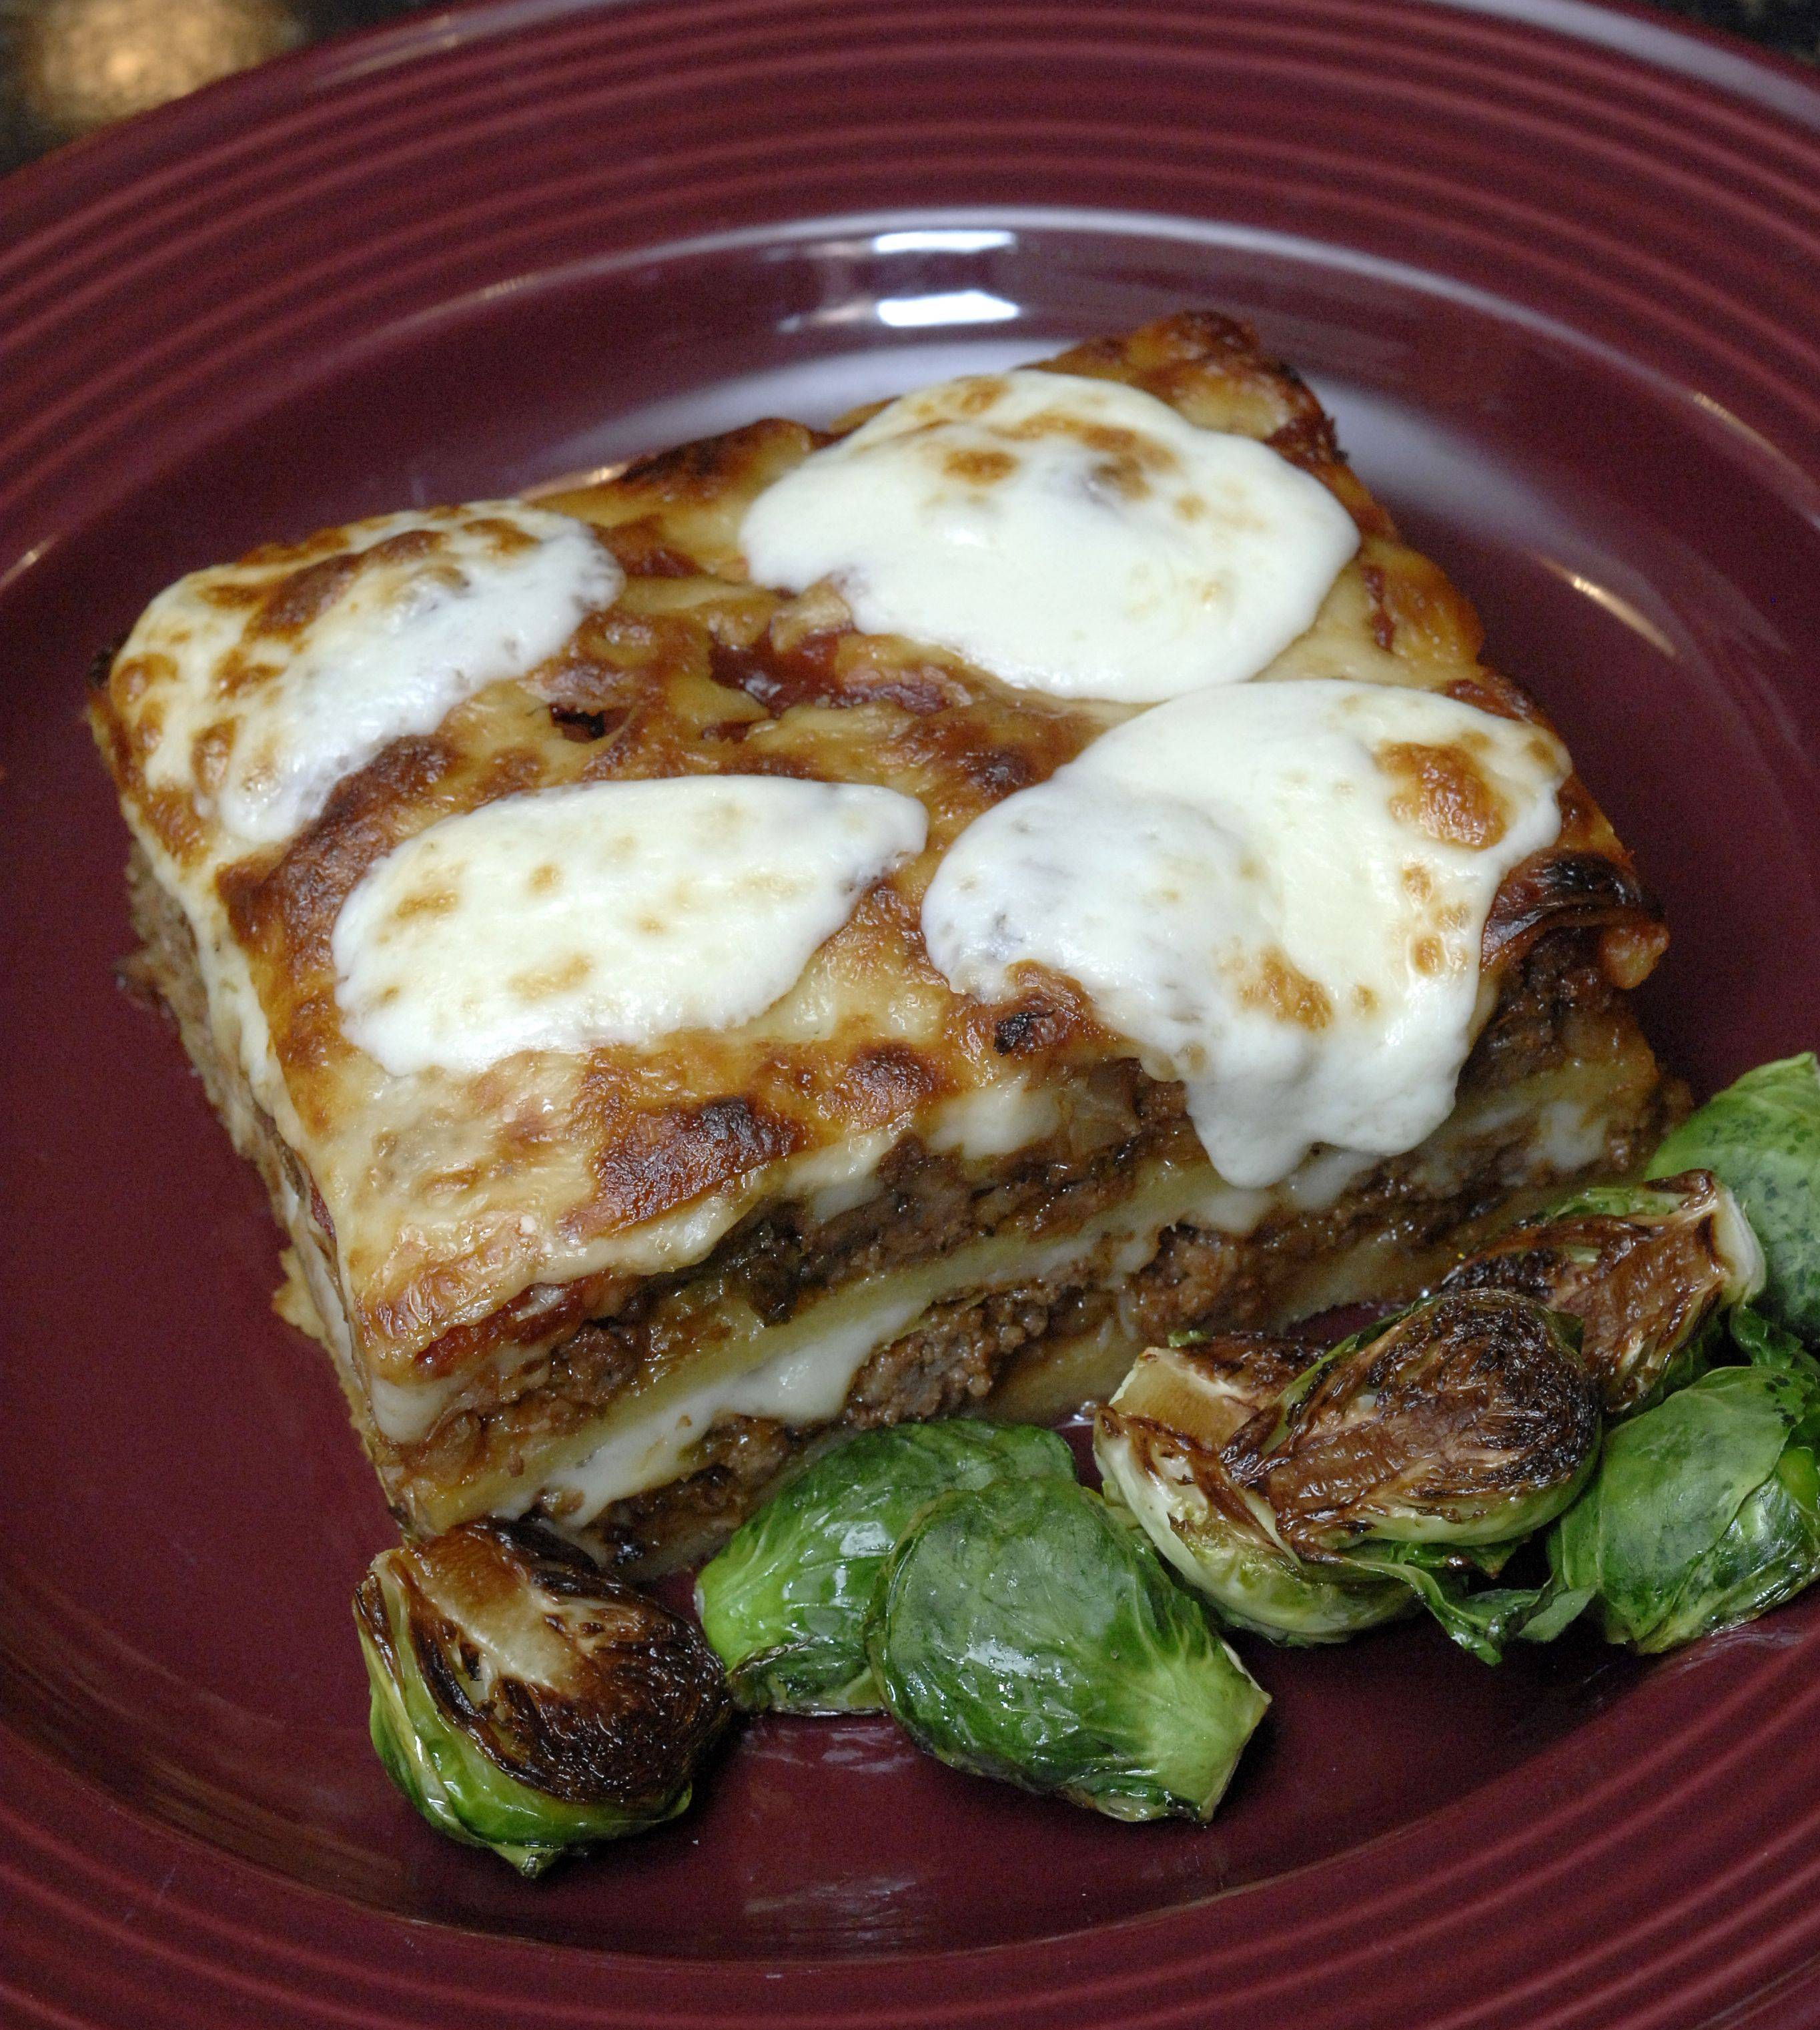 Mark Clemen of Elgin and his recipe for the Cook of the Week Challenge. He made a lasagna dish with polenta, Brussels sprouts, ground beef and barbecue sauce. Instead of lasagna noodles, Clemen used the polenta in place of noodles.